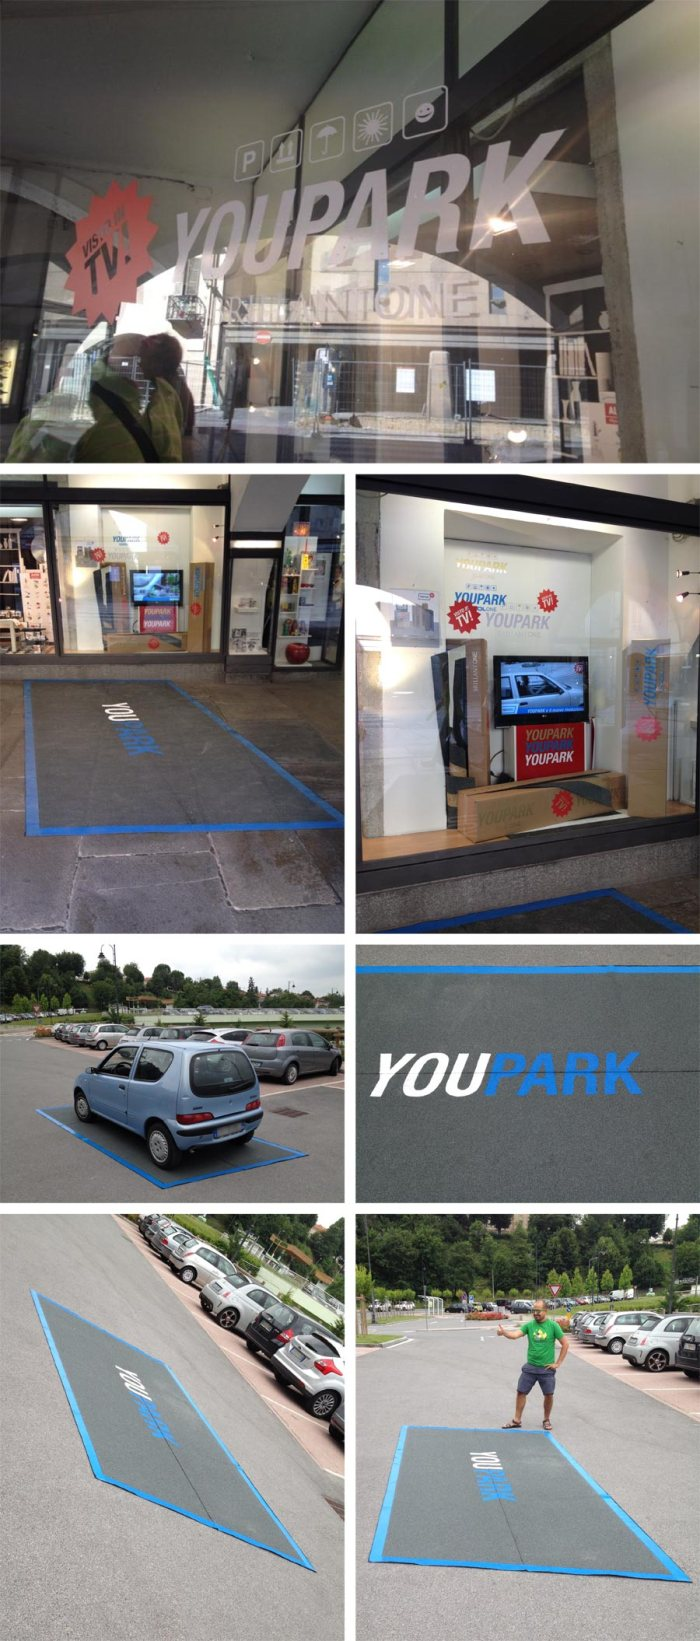 youpark